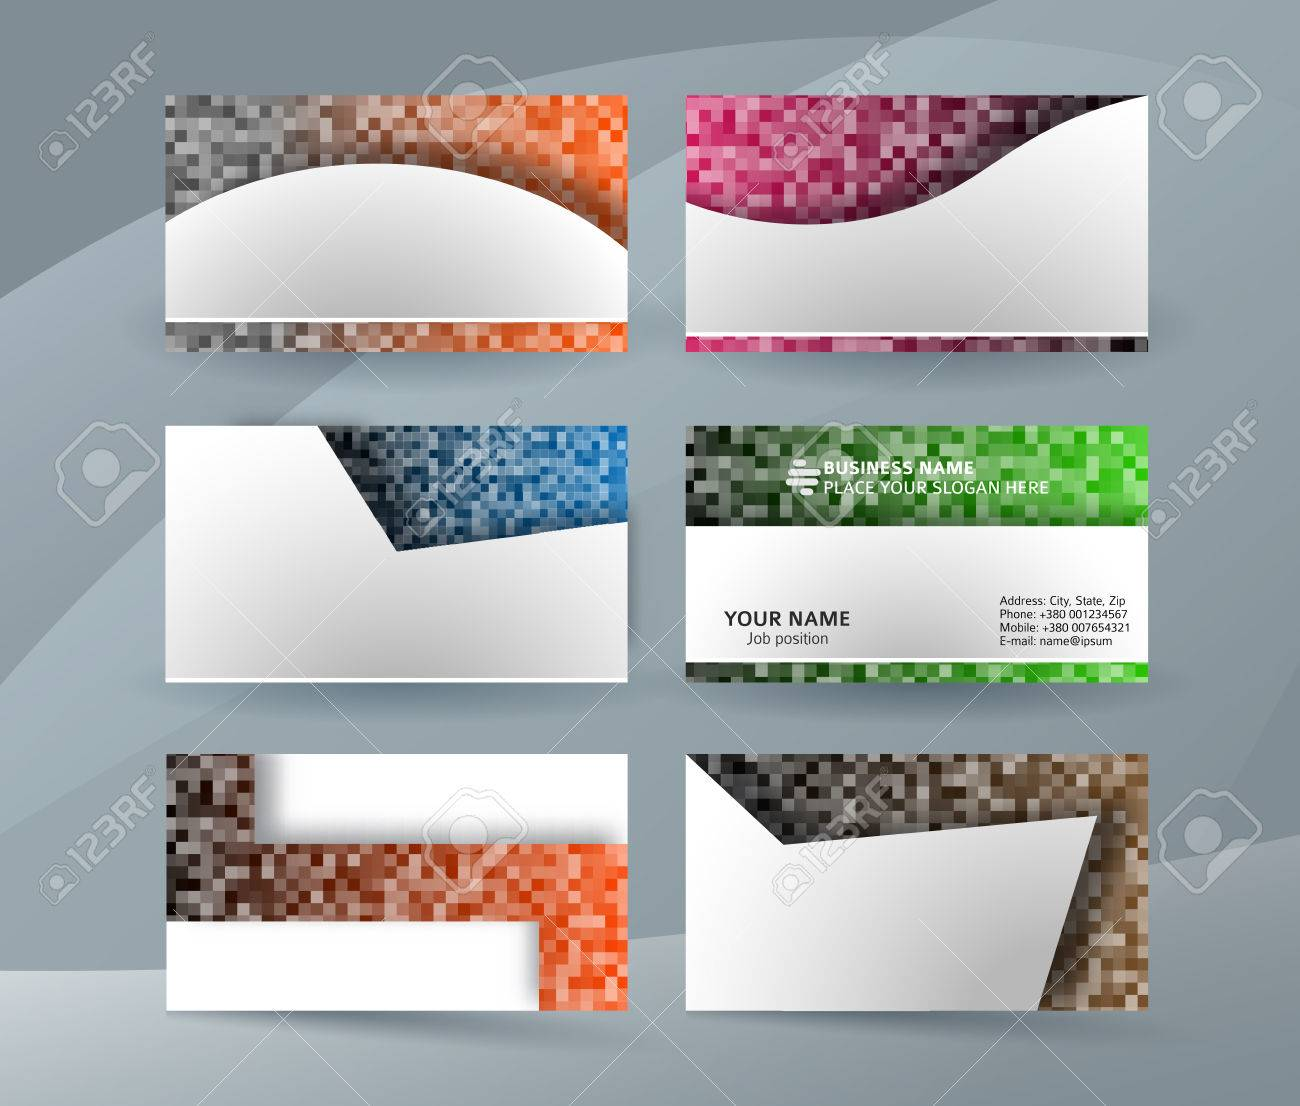 Professional and designer business card template or clear minimal professional and designer business card template or clear minimal visiting card set name card colourmoves